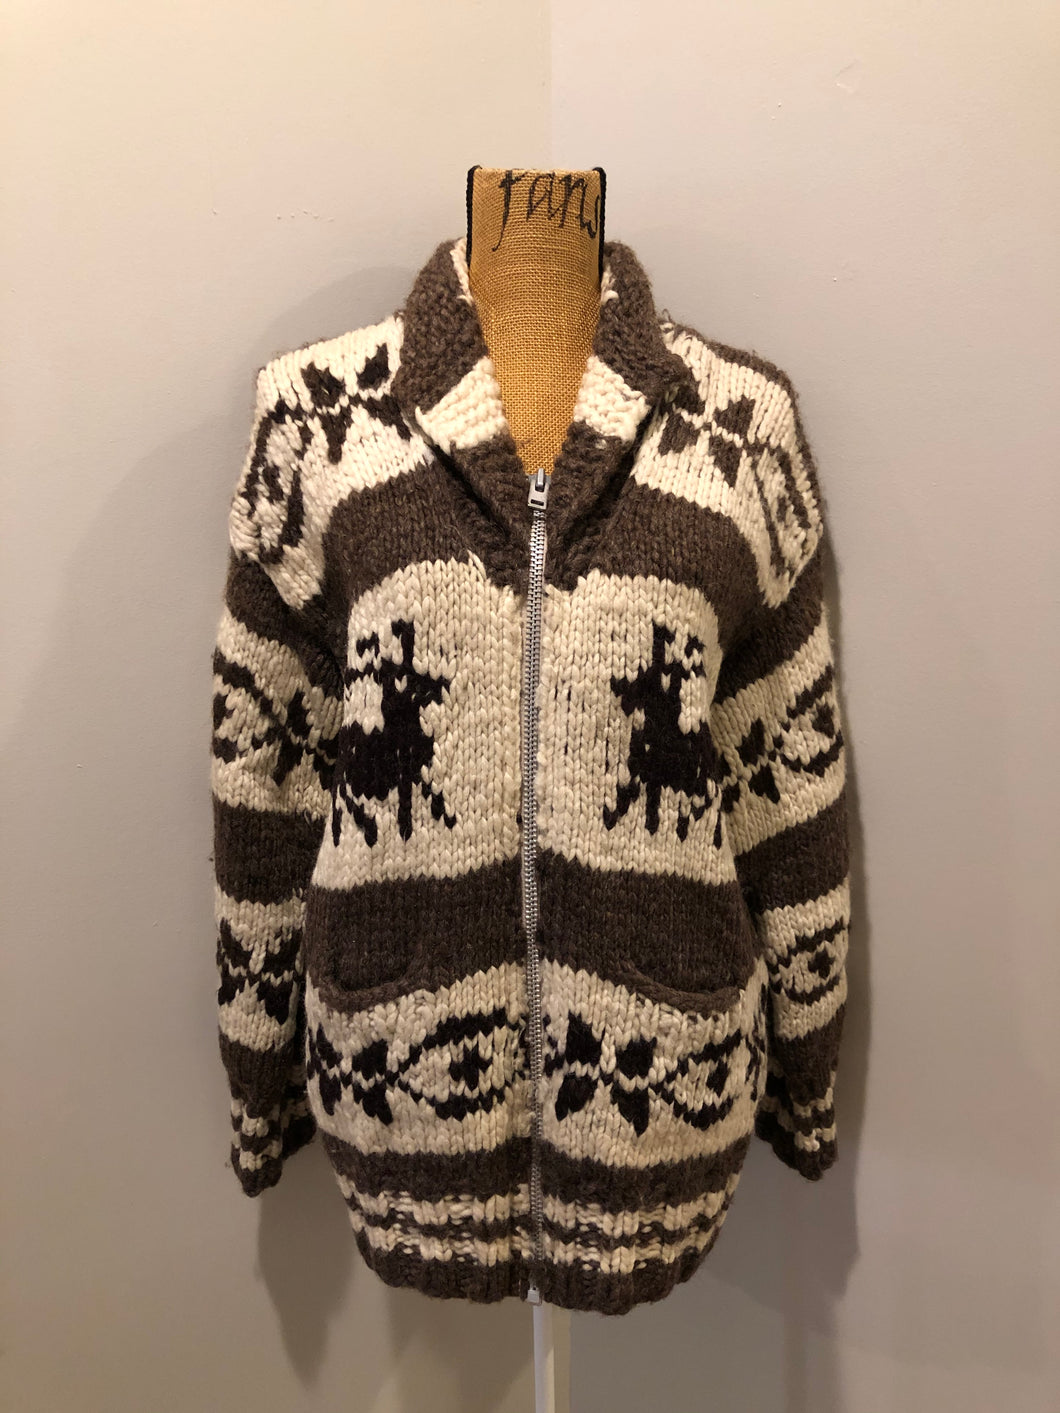 Genuine Cowichan hand spun, hand knit wool cardigan in cream, taupe brown and black with deer design, zipper and pockets.